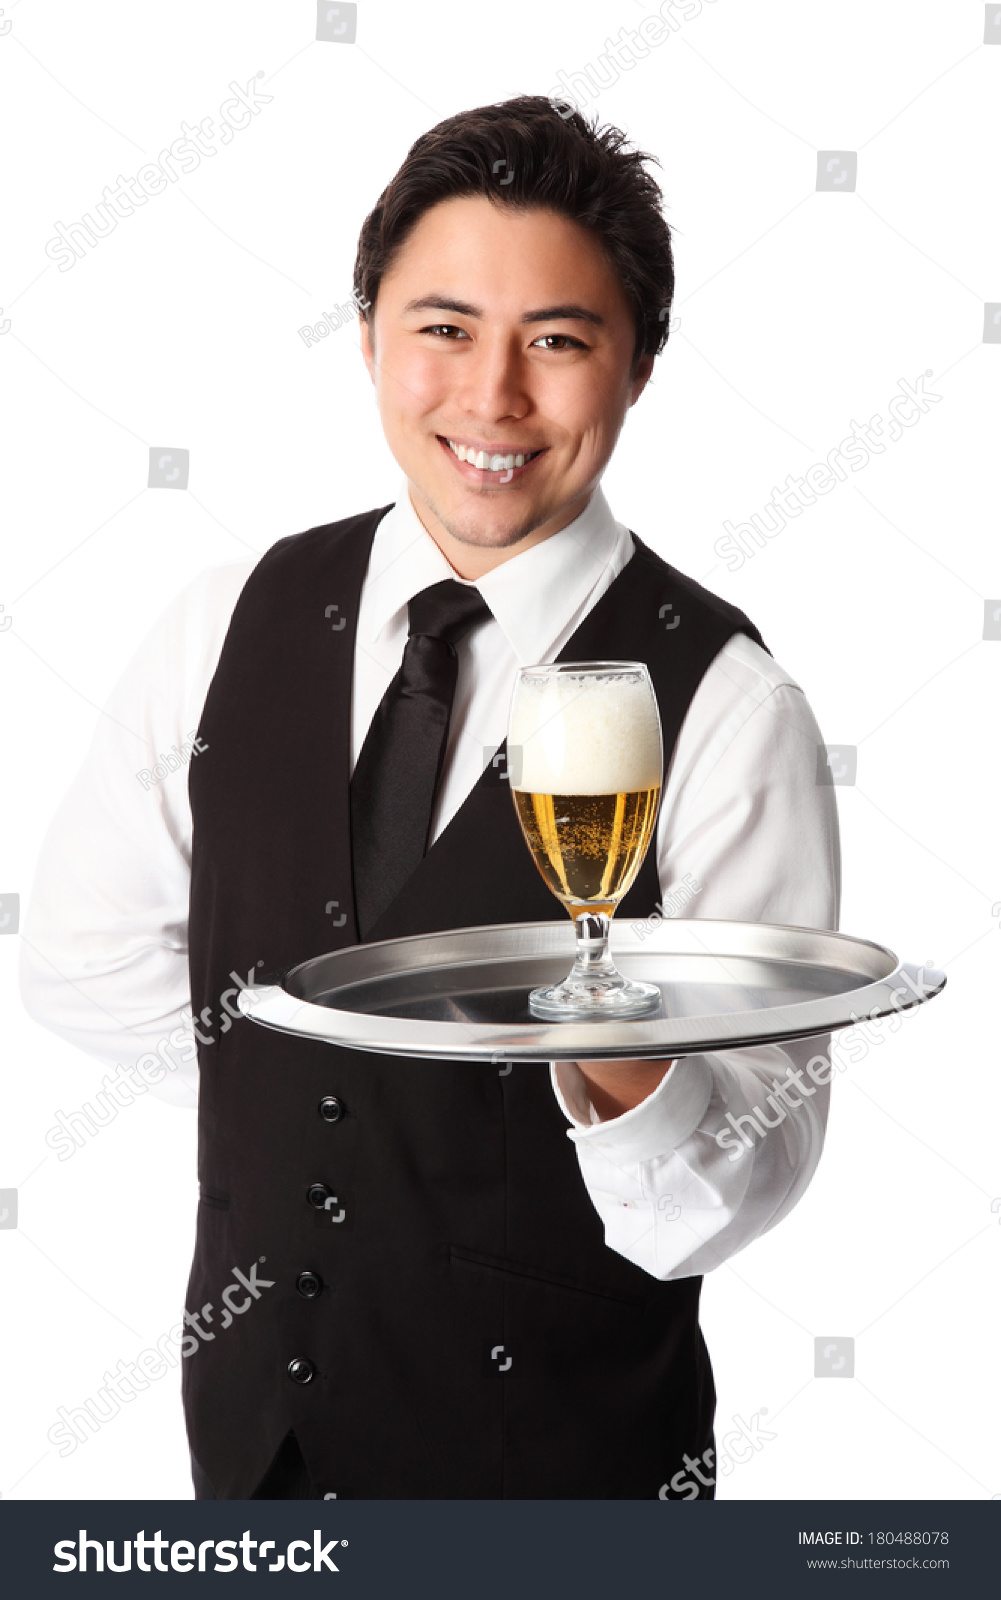 Young Attractive Waiter Wearing White Shirt Stock Photo ...